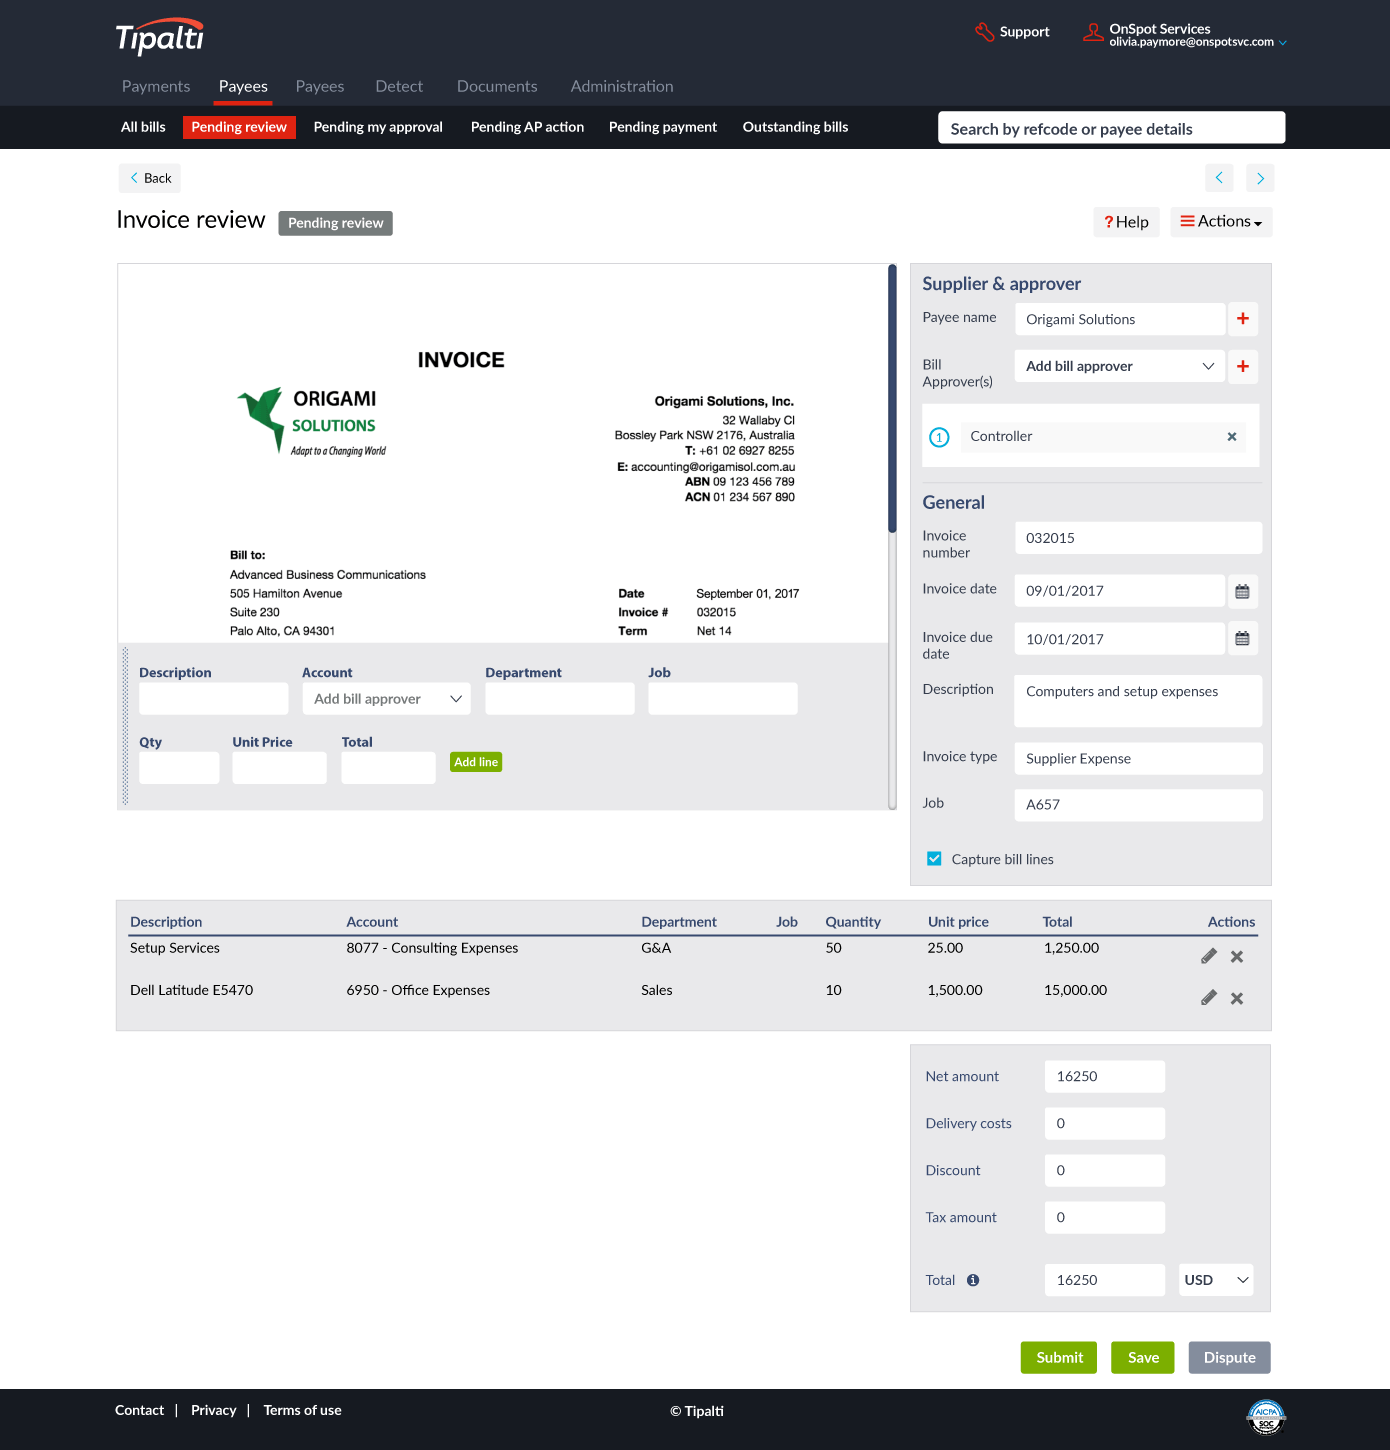 Tipalti-touchless-OCR-invoice-processing